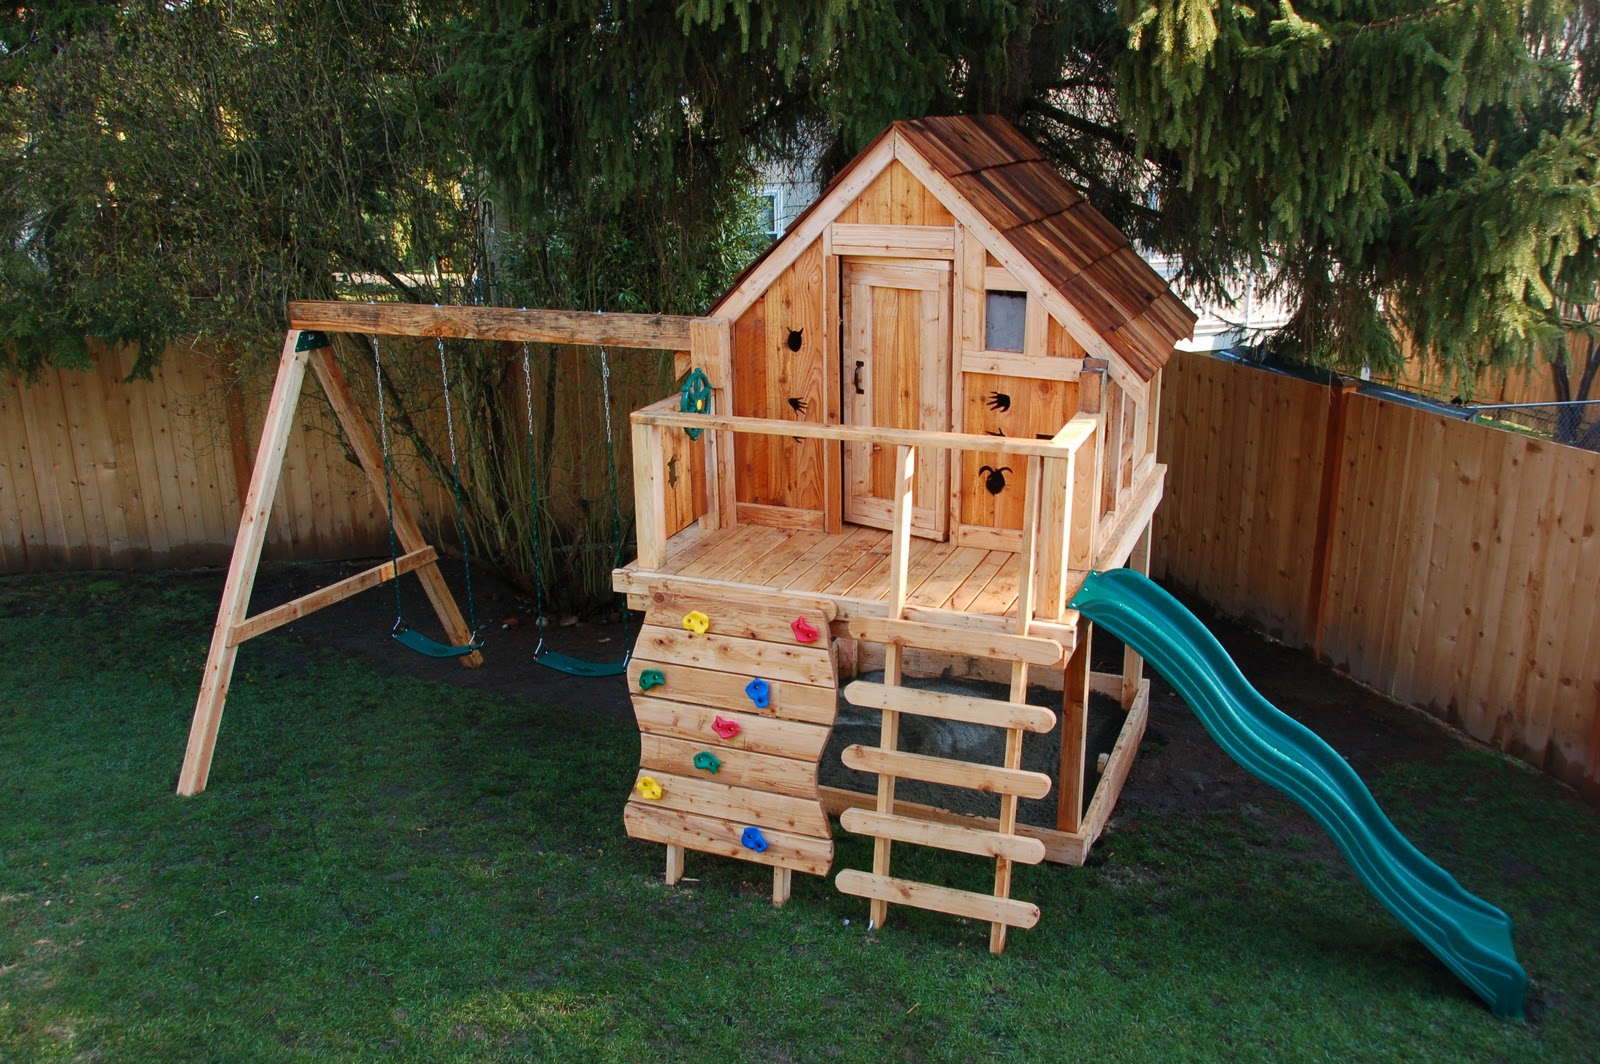 Diy playhouse with swing set plans 2015 best auto reviews for Free playhouse plans